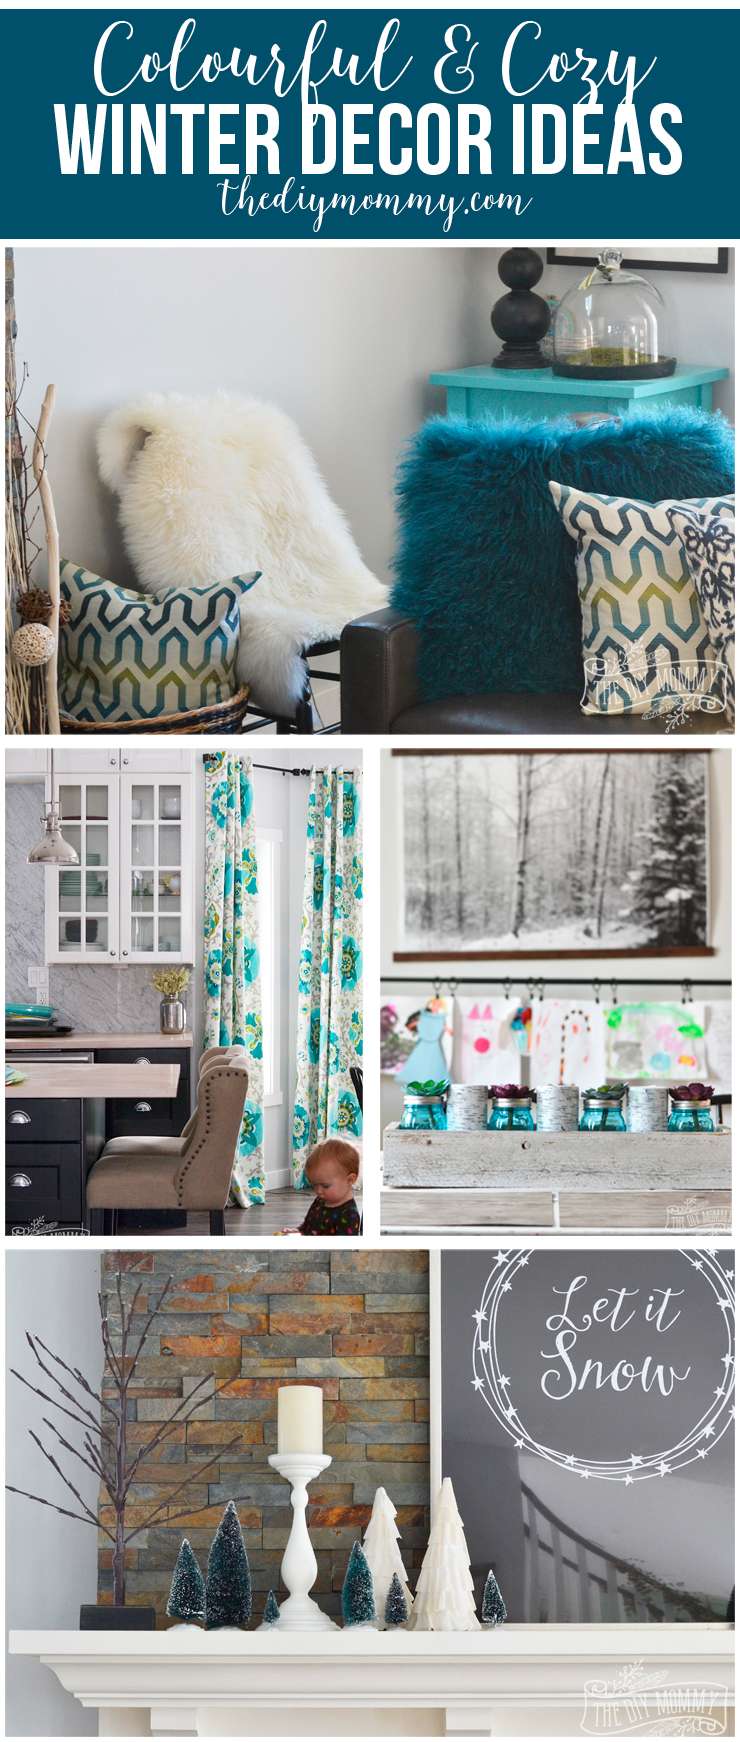 Colorful & Cozy Winter Decor Ideas: Here are some beautiful decor ideas to beat the January blues. I love the pop of colour!